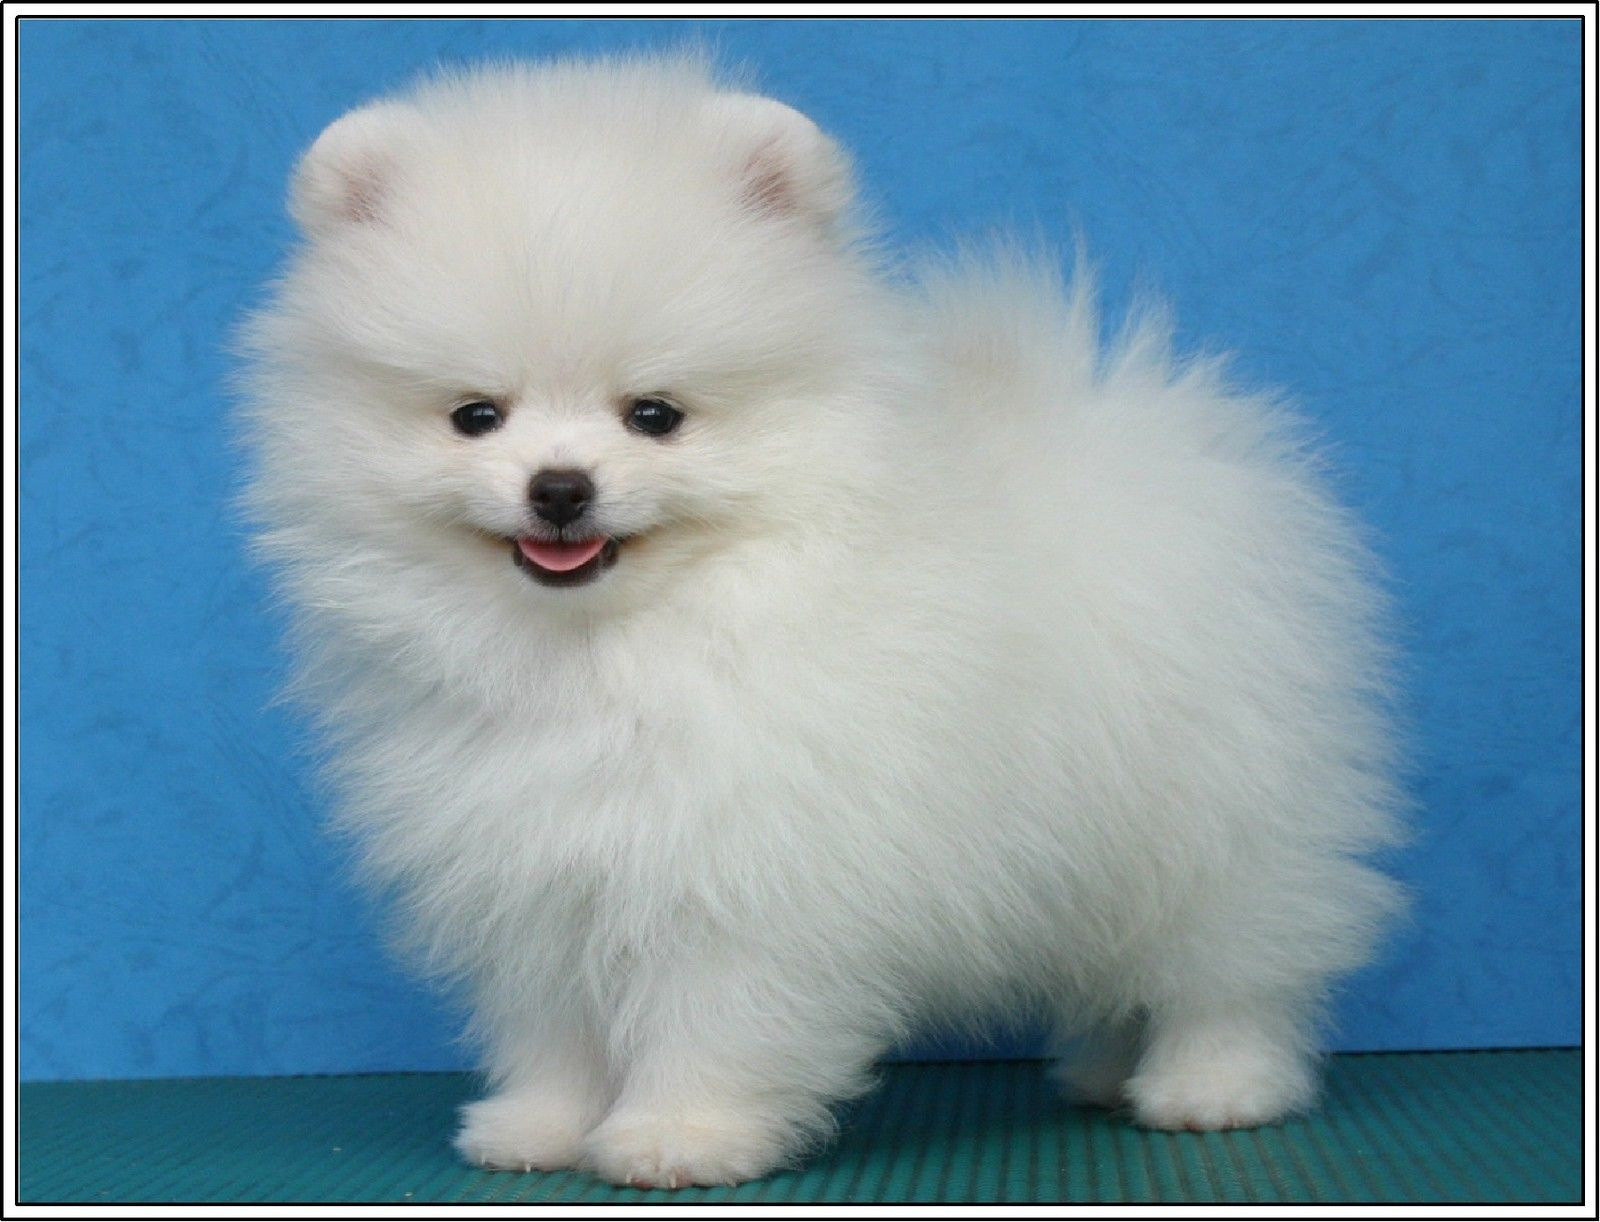 639 4pack dogs pomeranian dog puppies puppy greeting stationery 639 4pack dogs pomeranian dog puppies puppy greeting stationery notecards envelopes ebay collectibles thecheapjerseys Image collections